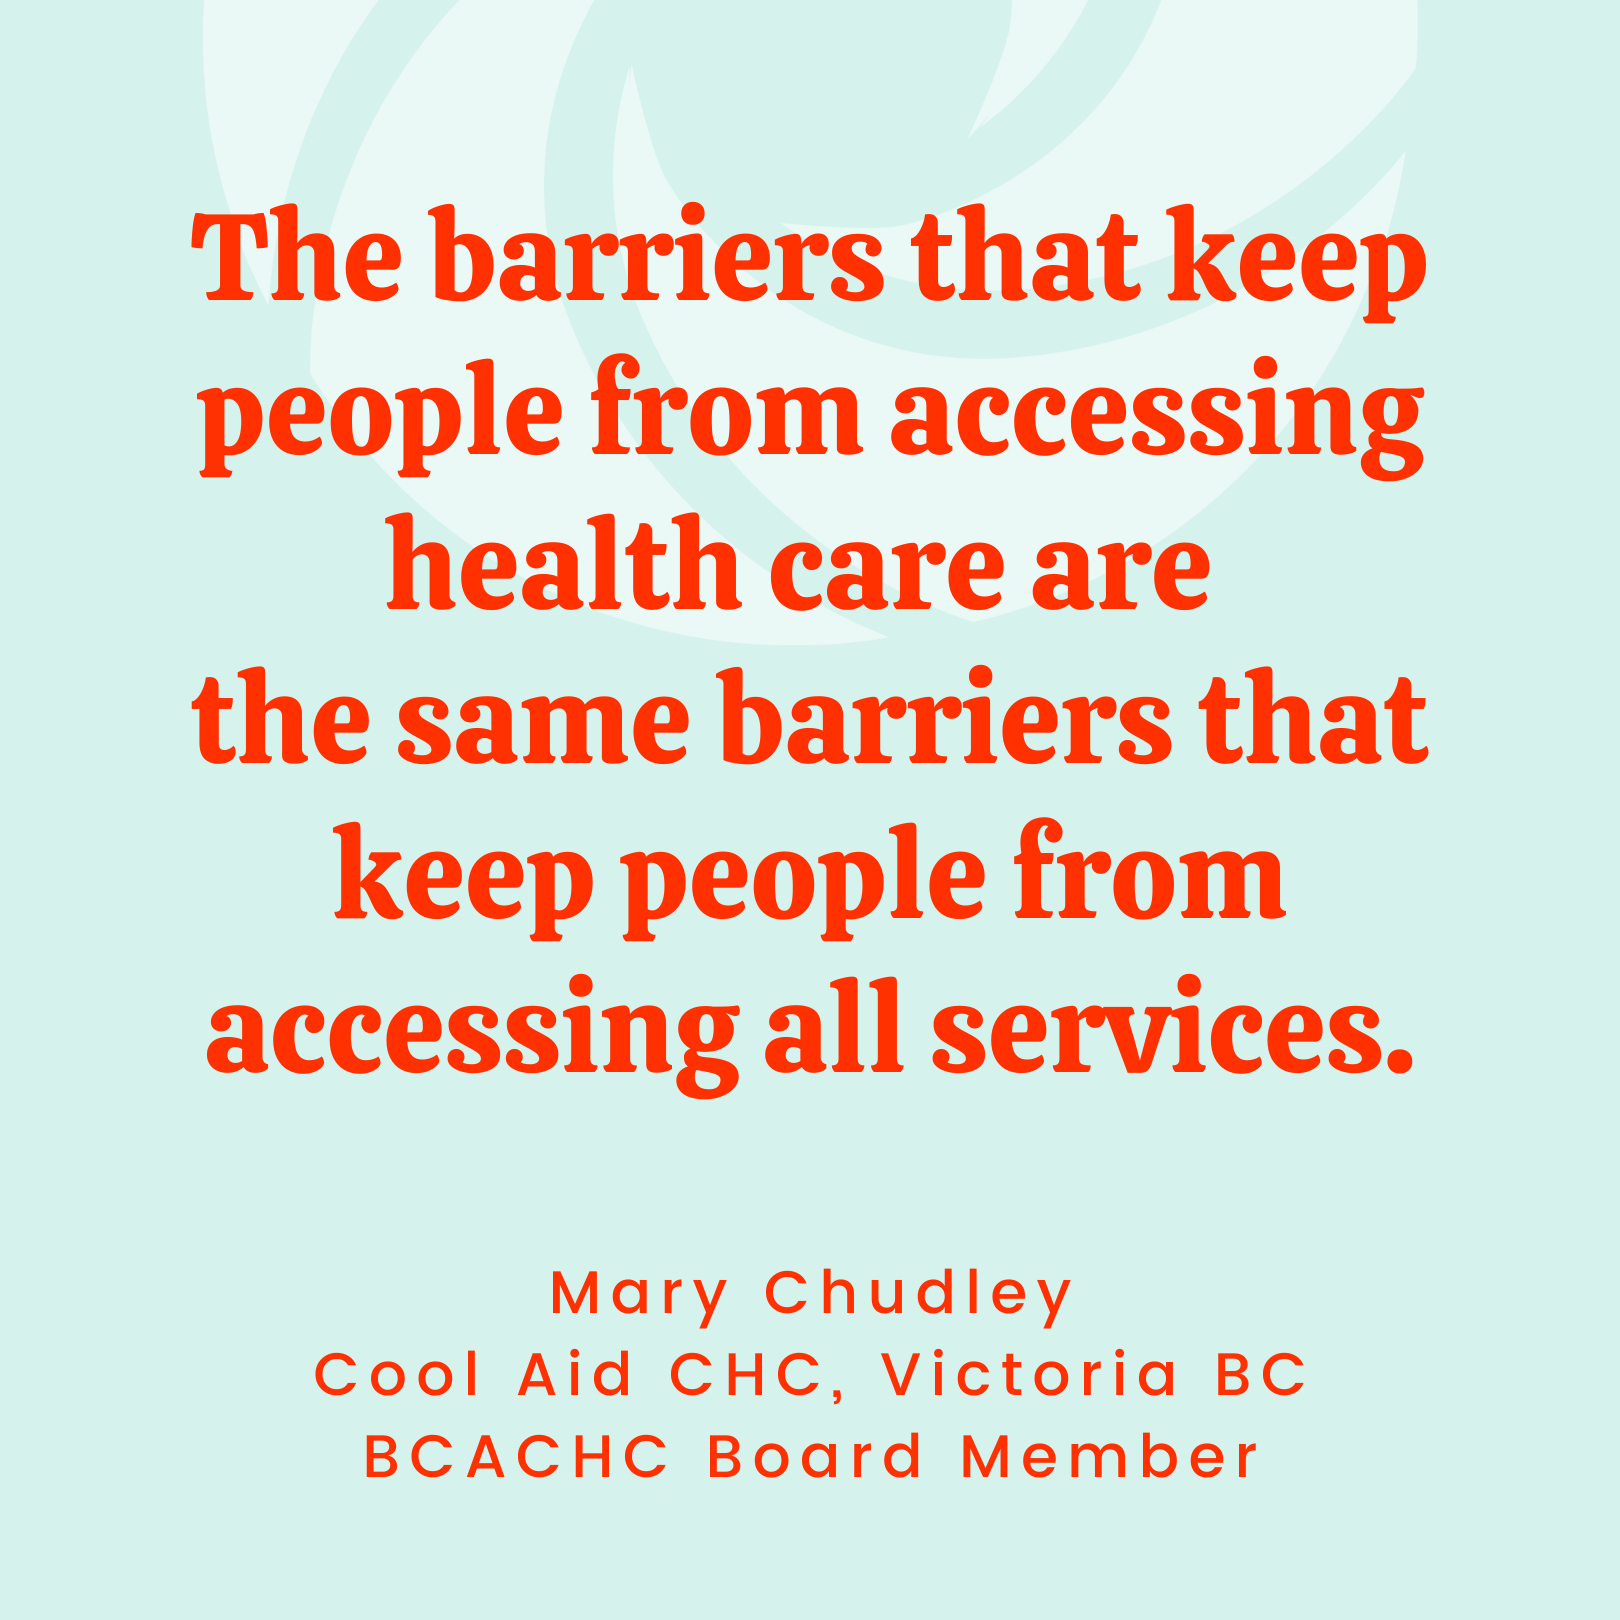 Barriers quote: The barriers that keep people from accessing health care are the same barriers that keep people from accessing all services. - Mary Chudley